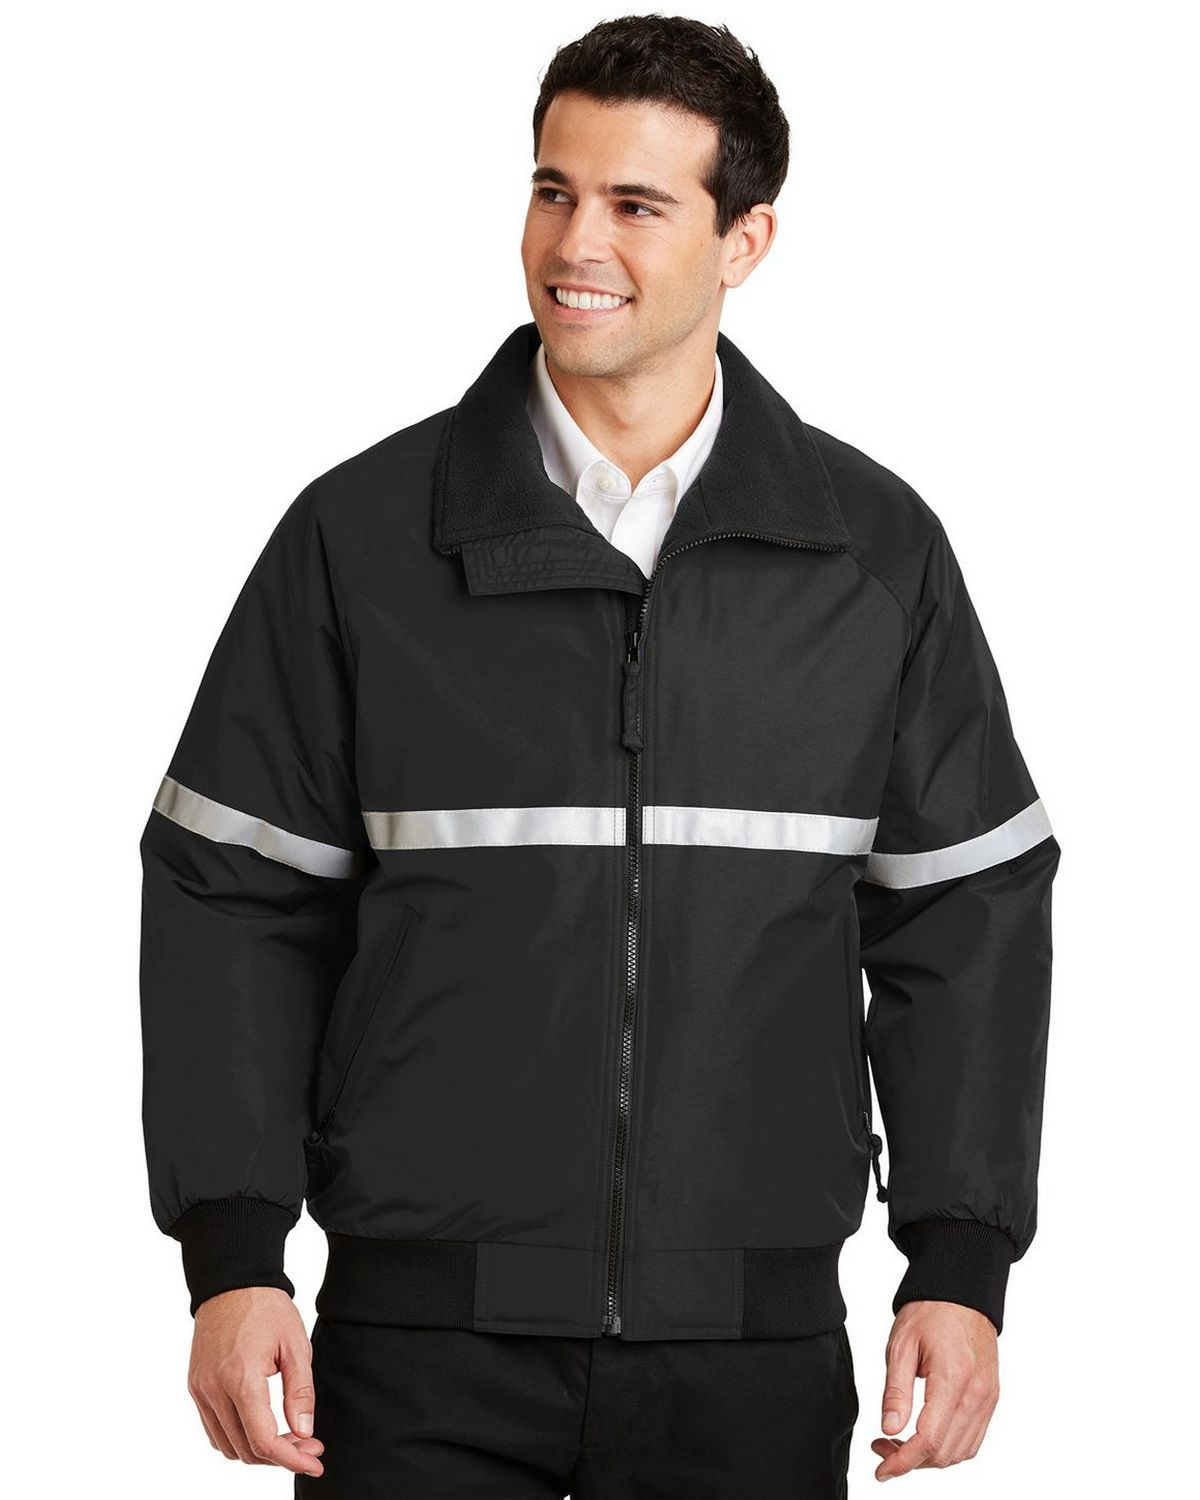 Port Authority J754R Challenger Jacket - True Black/True Black/Reflective - L J754R